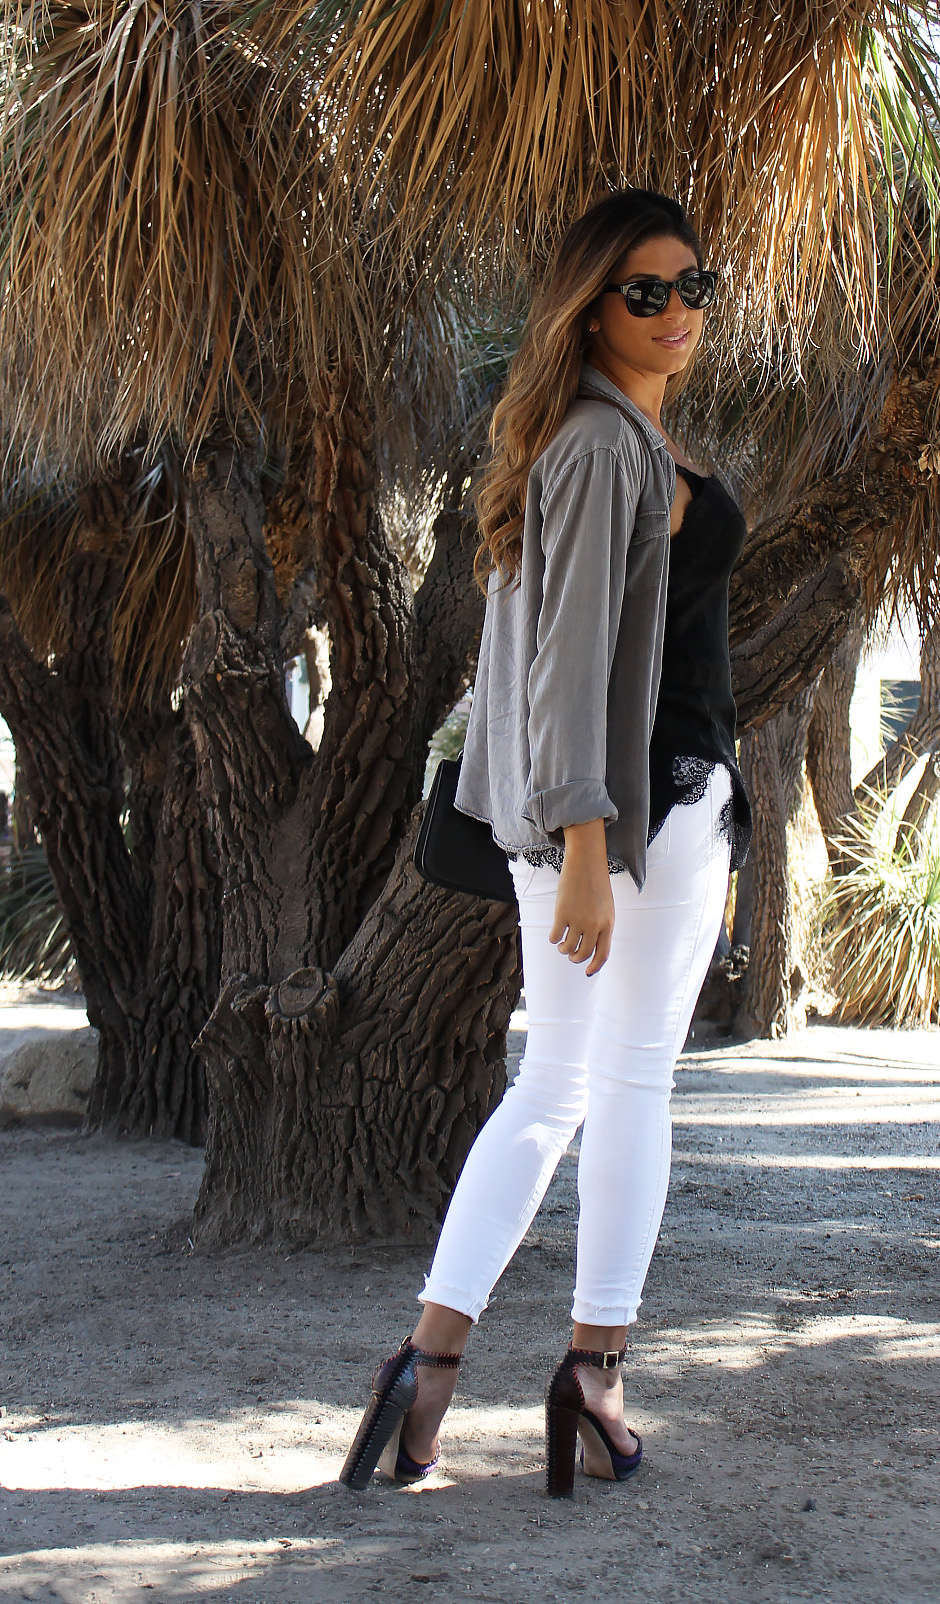 mel-ronnie-jimmy-choo-game-grey-top-lace-cami-black-white-denim-jeans-outfit-valentino-rockstud-bag-1.jpg